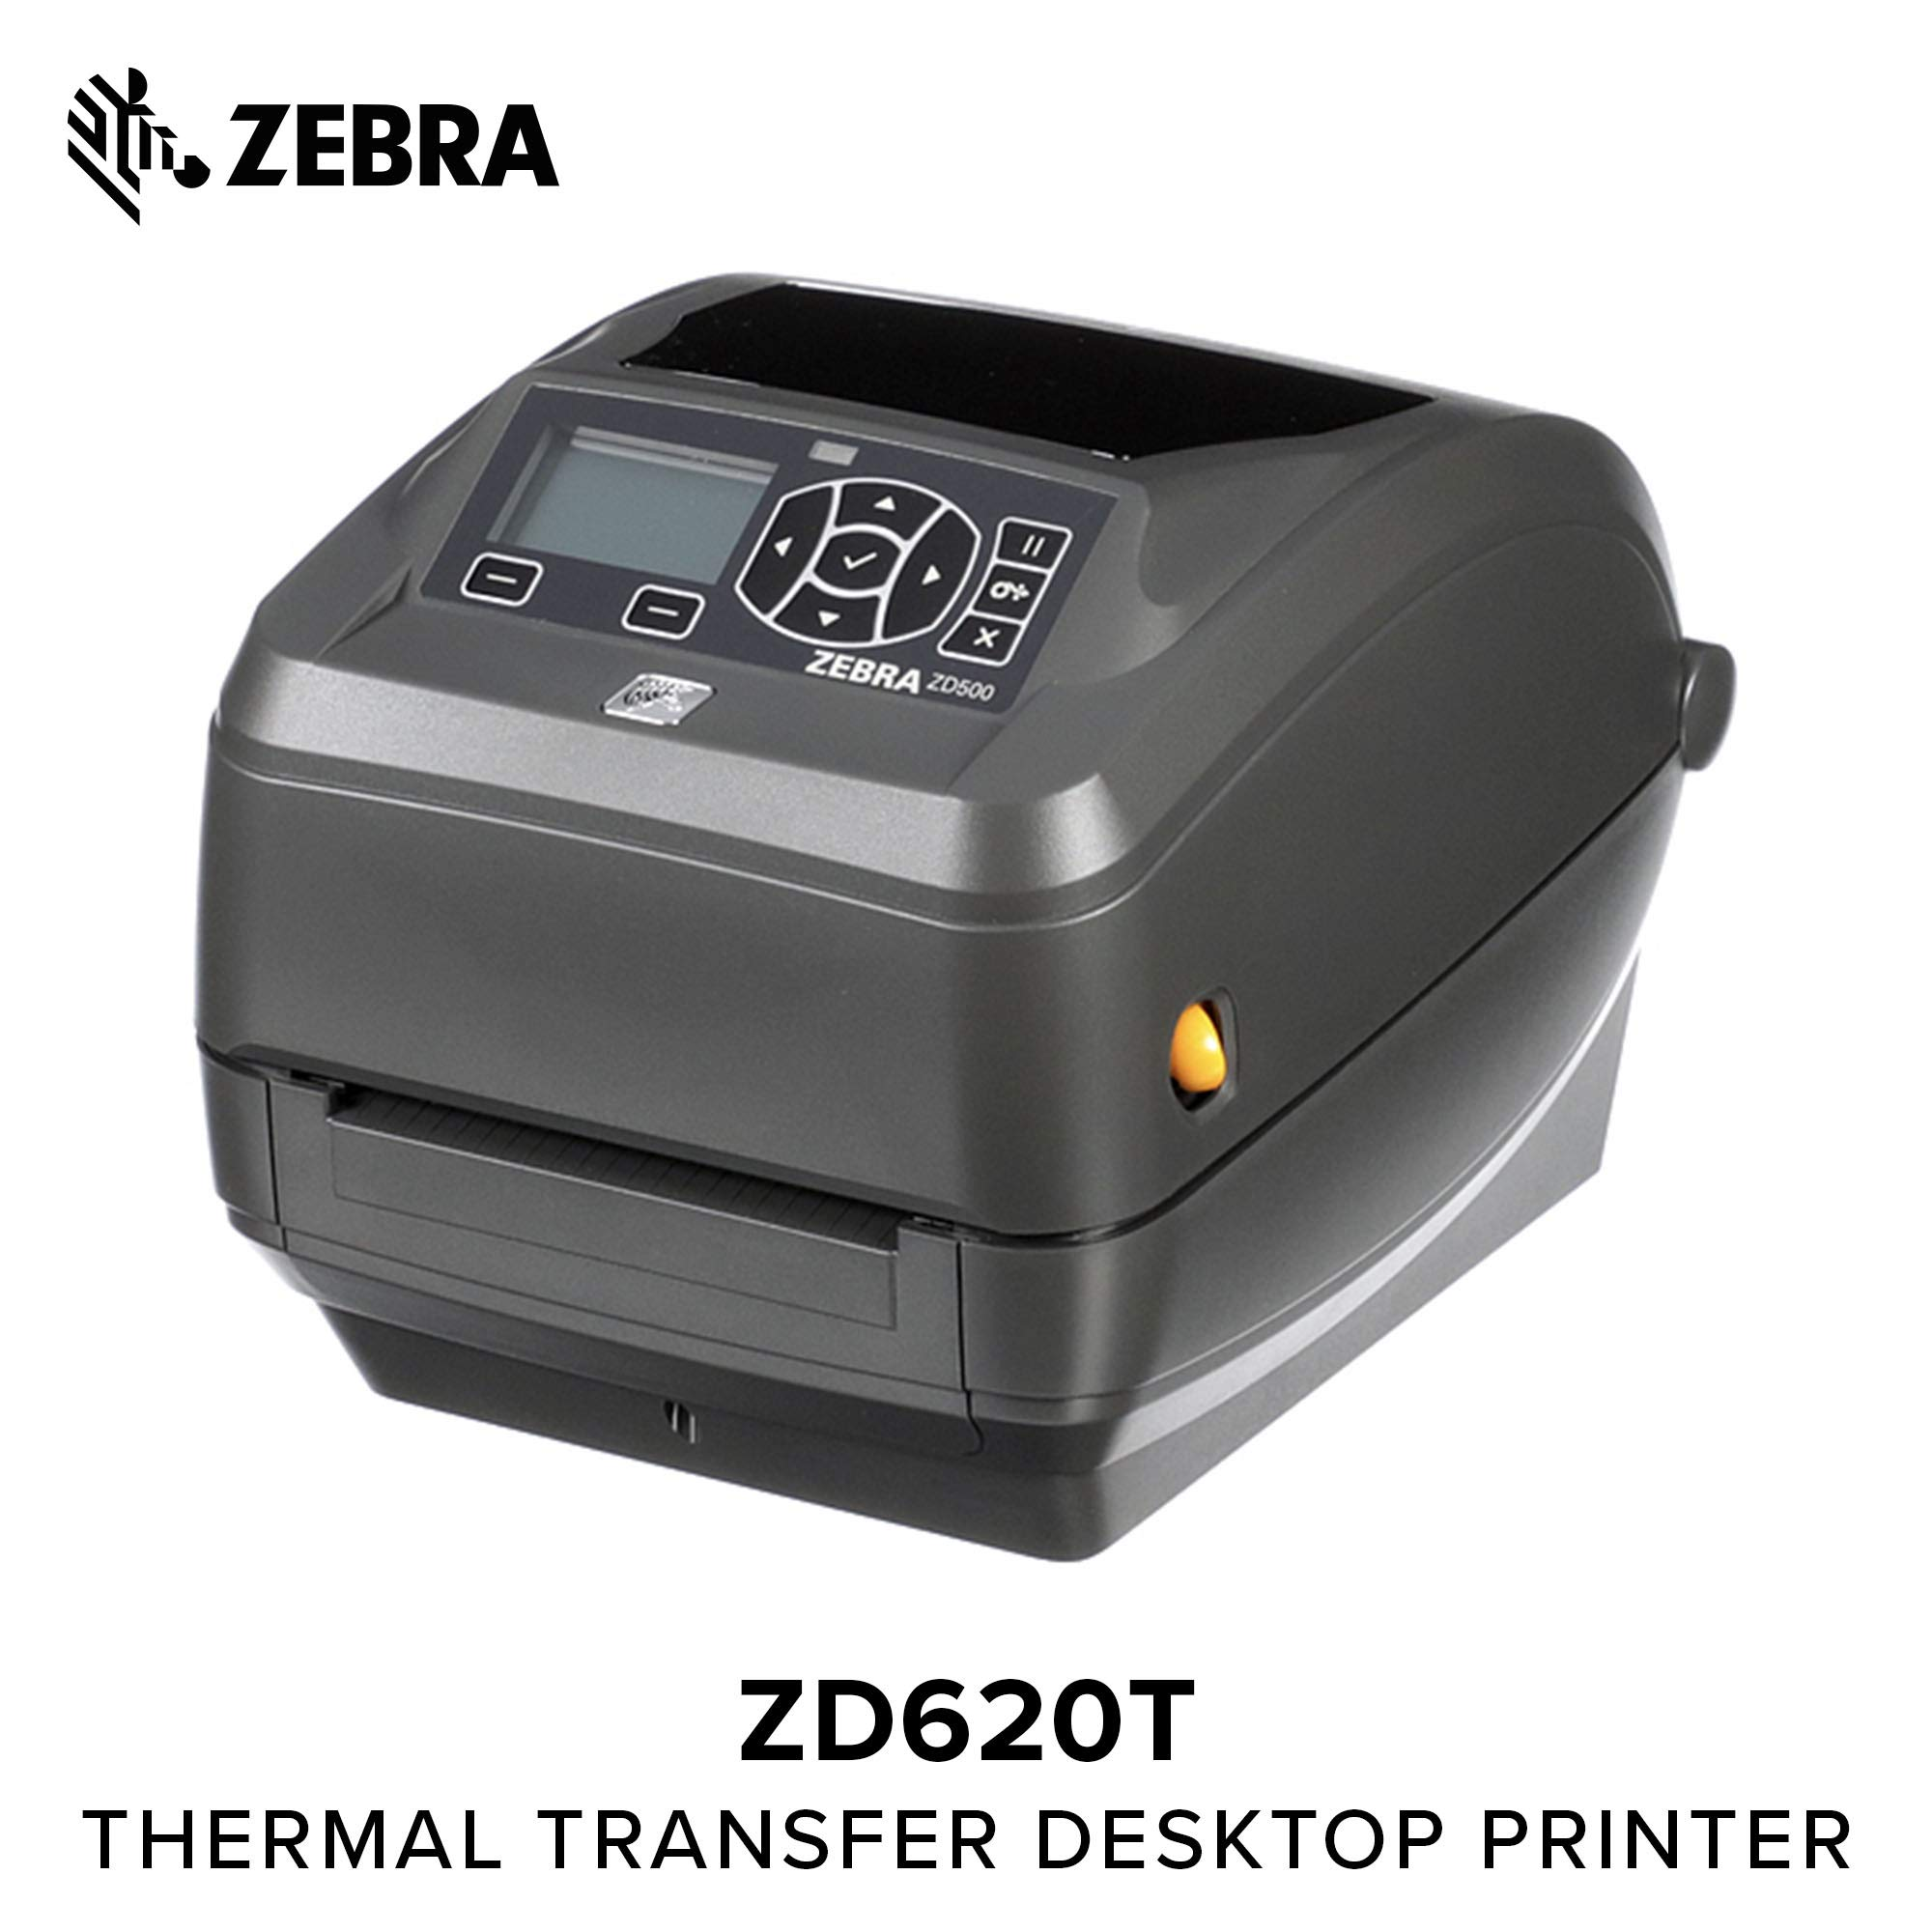 Zebra - ZD620t Thermal Transfer Desktop Printer for Labels and Barcodes - Print Width 4 in - 203 dpi - Interface: Bluetooth LE, Ethernet, Serial, USB - ZD62042-T01F00EZ